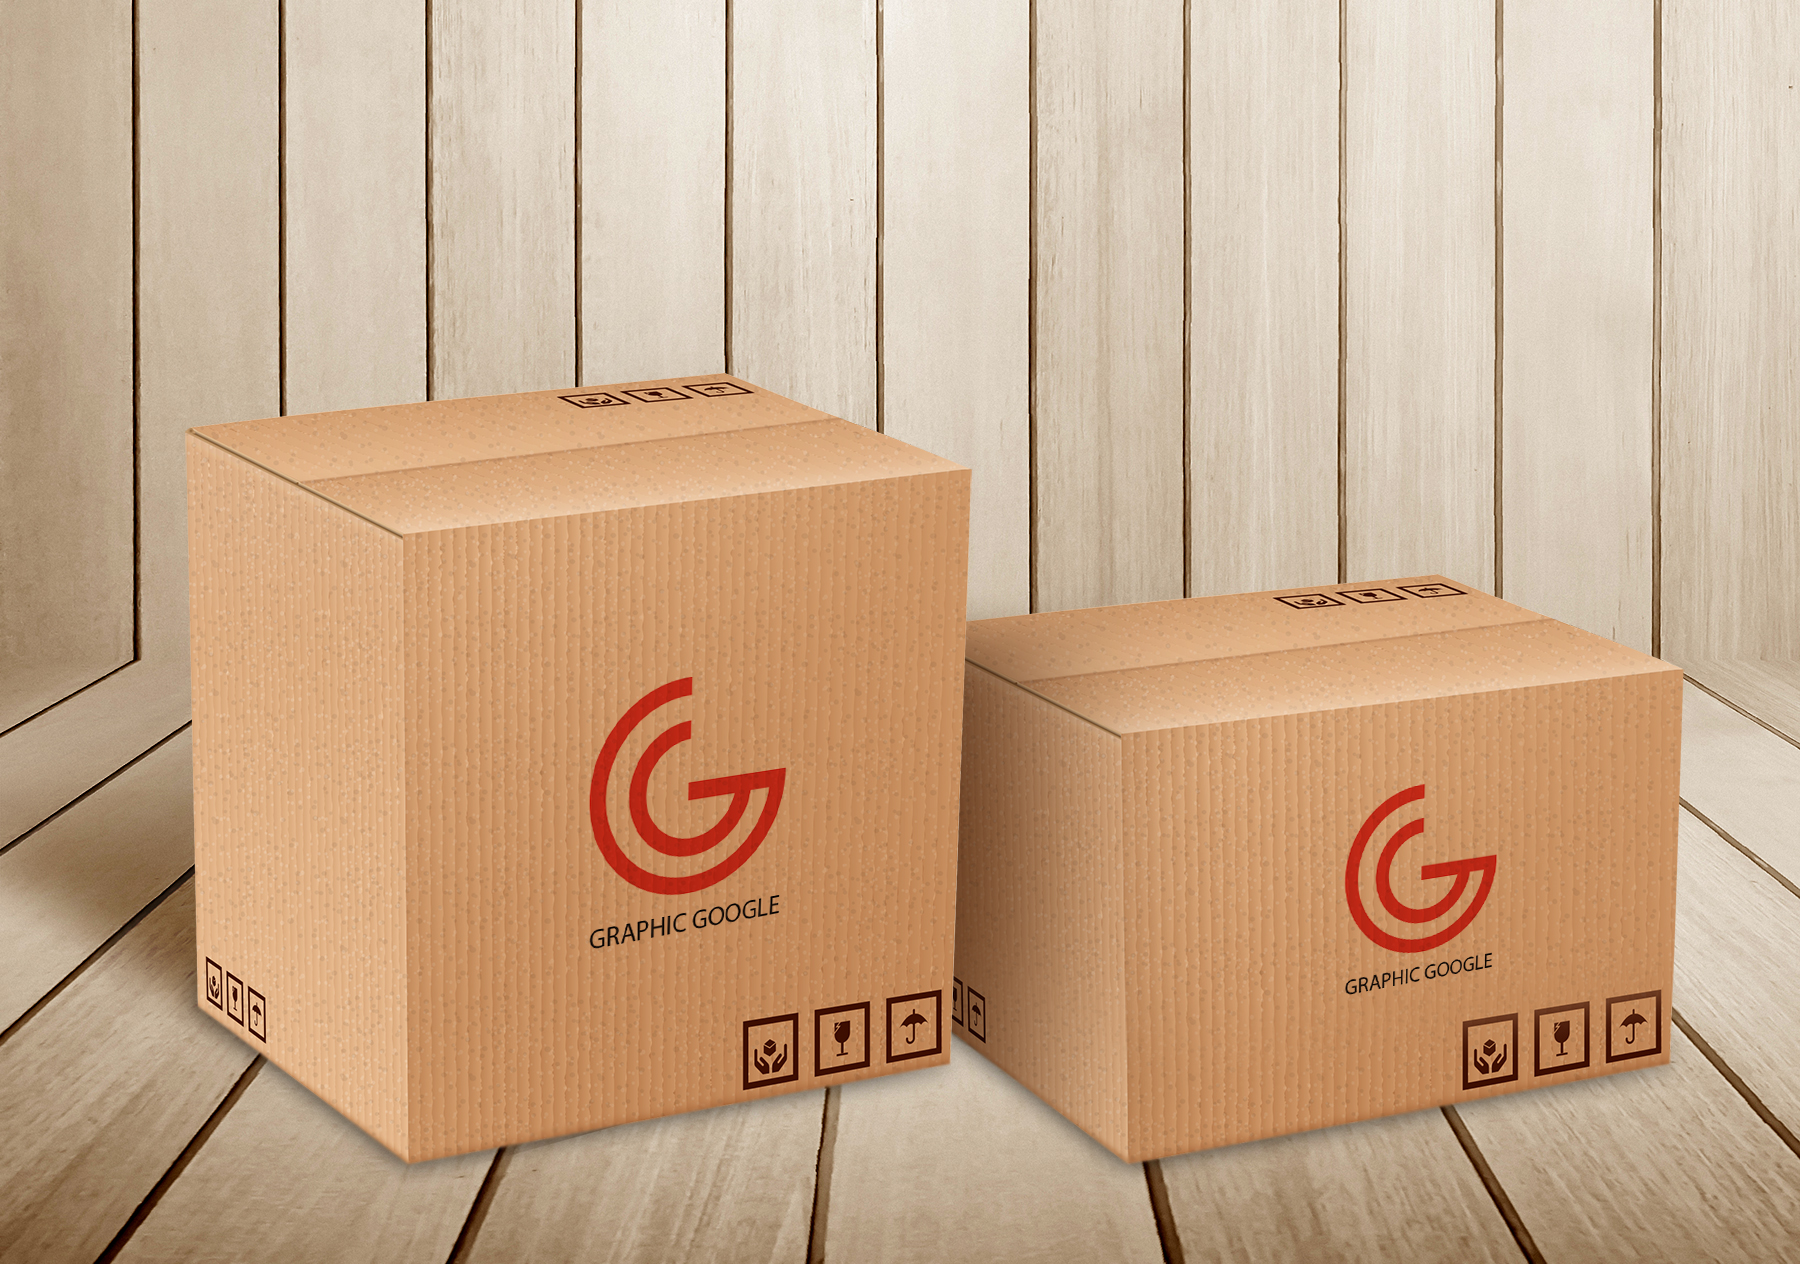 free carton delivery packaging box logo mockup graphic google tasty graphic designs collection. Black Bedroom Furniture Sets. Home Design Ideas